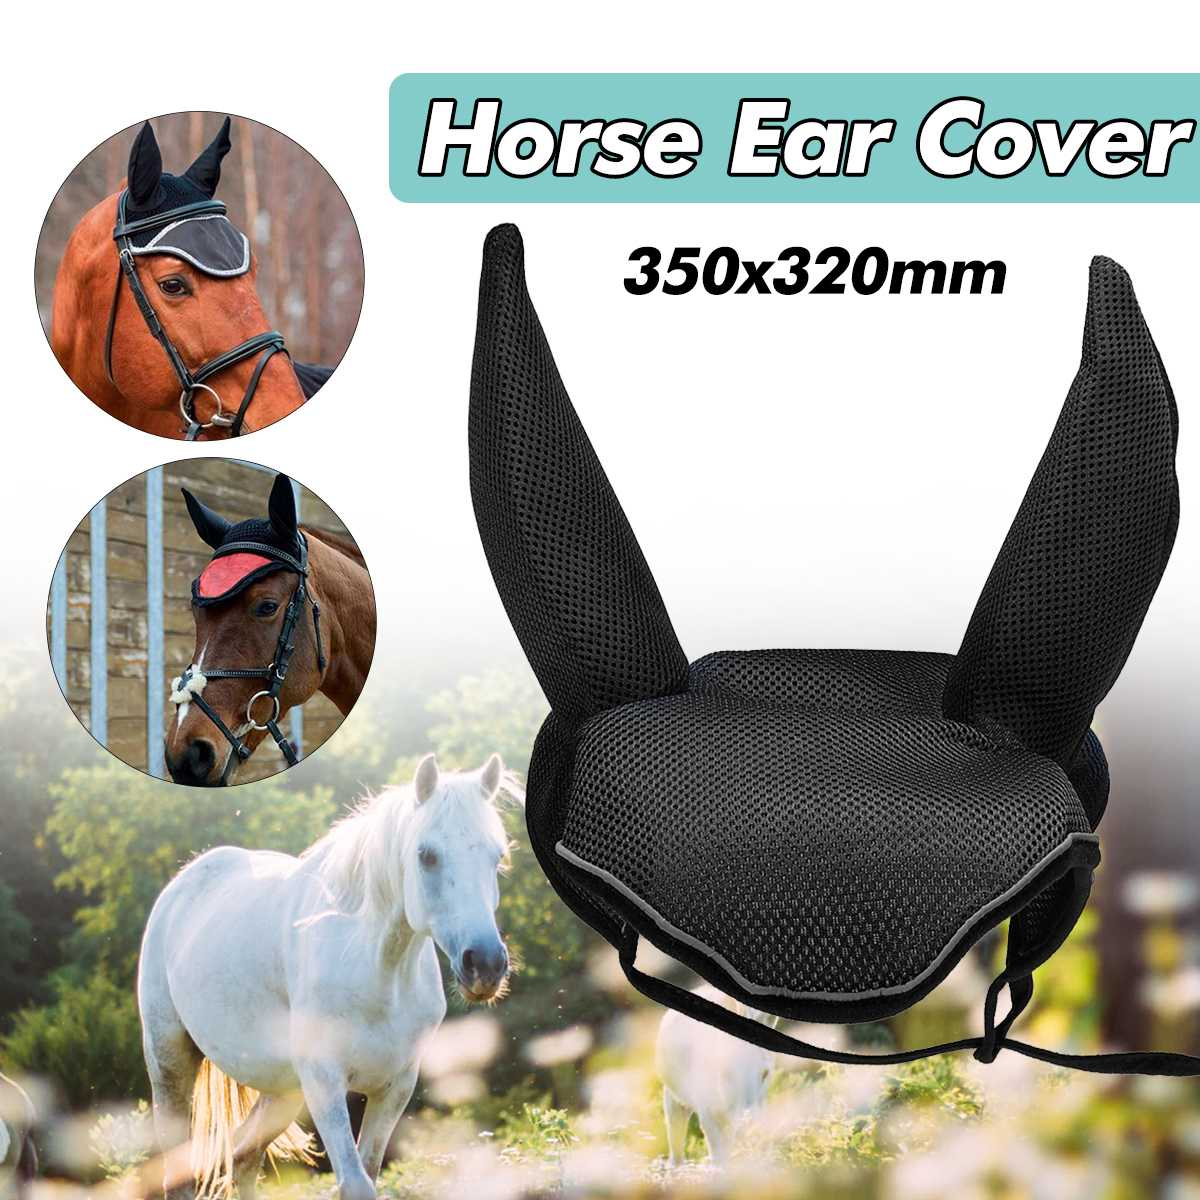 New Horse Ear Cover Horse Equipment Outdoor Equestrian Protector Horse Riding Breathable Meshed Ear Net Cover Prevent Insects